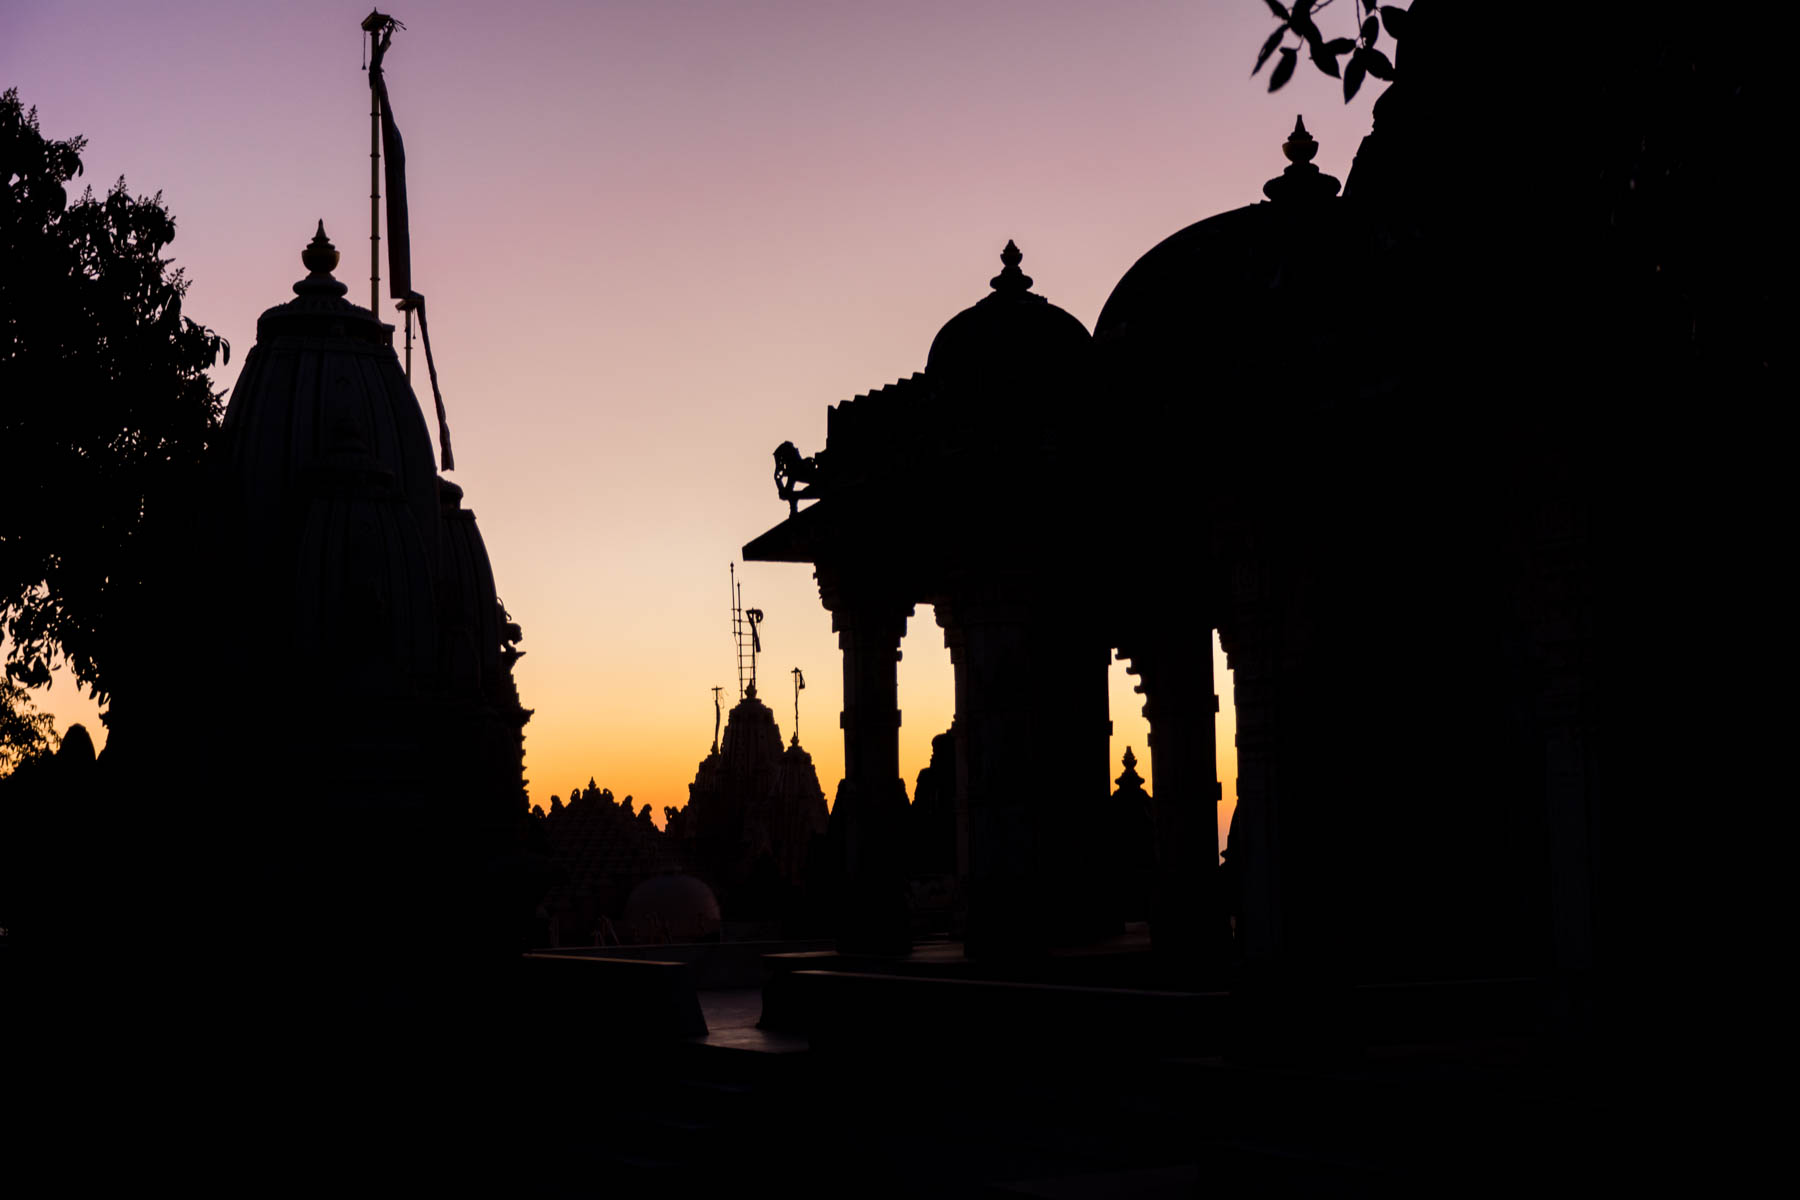 Jain pilgrimage in Palitana, India - Temple silhouettes at sunrise - Lost With Purpose